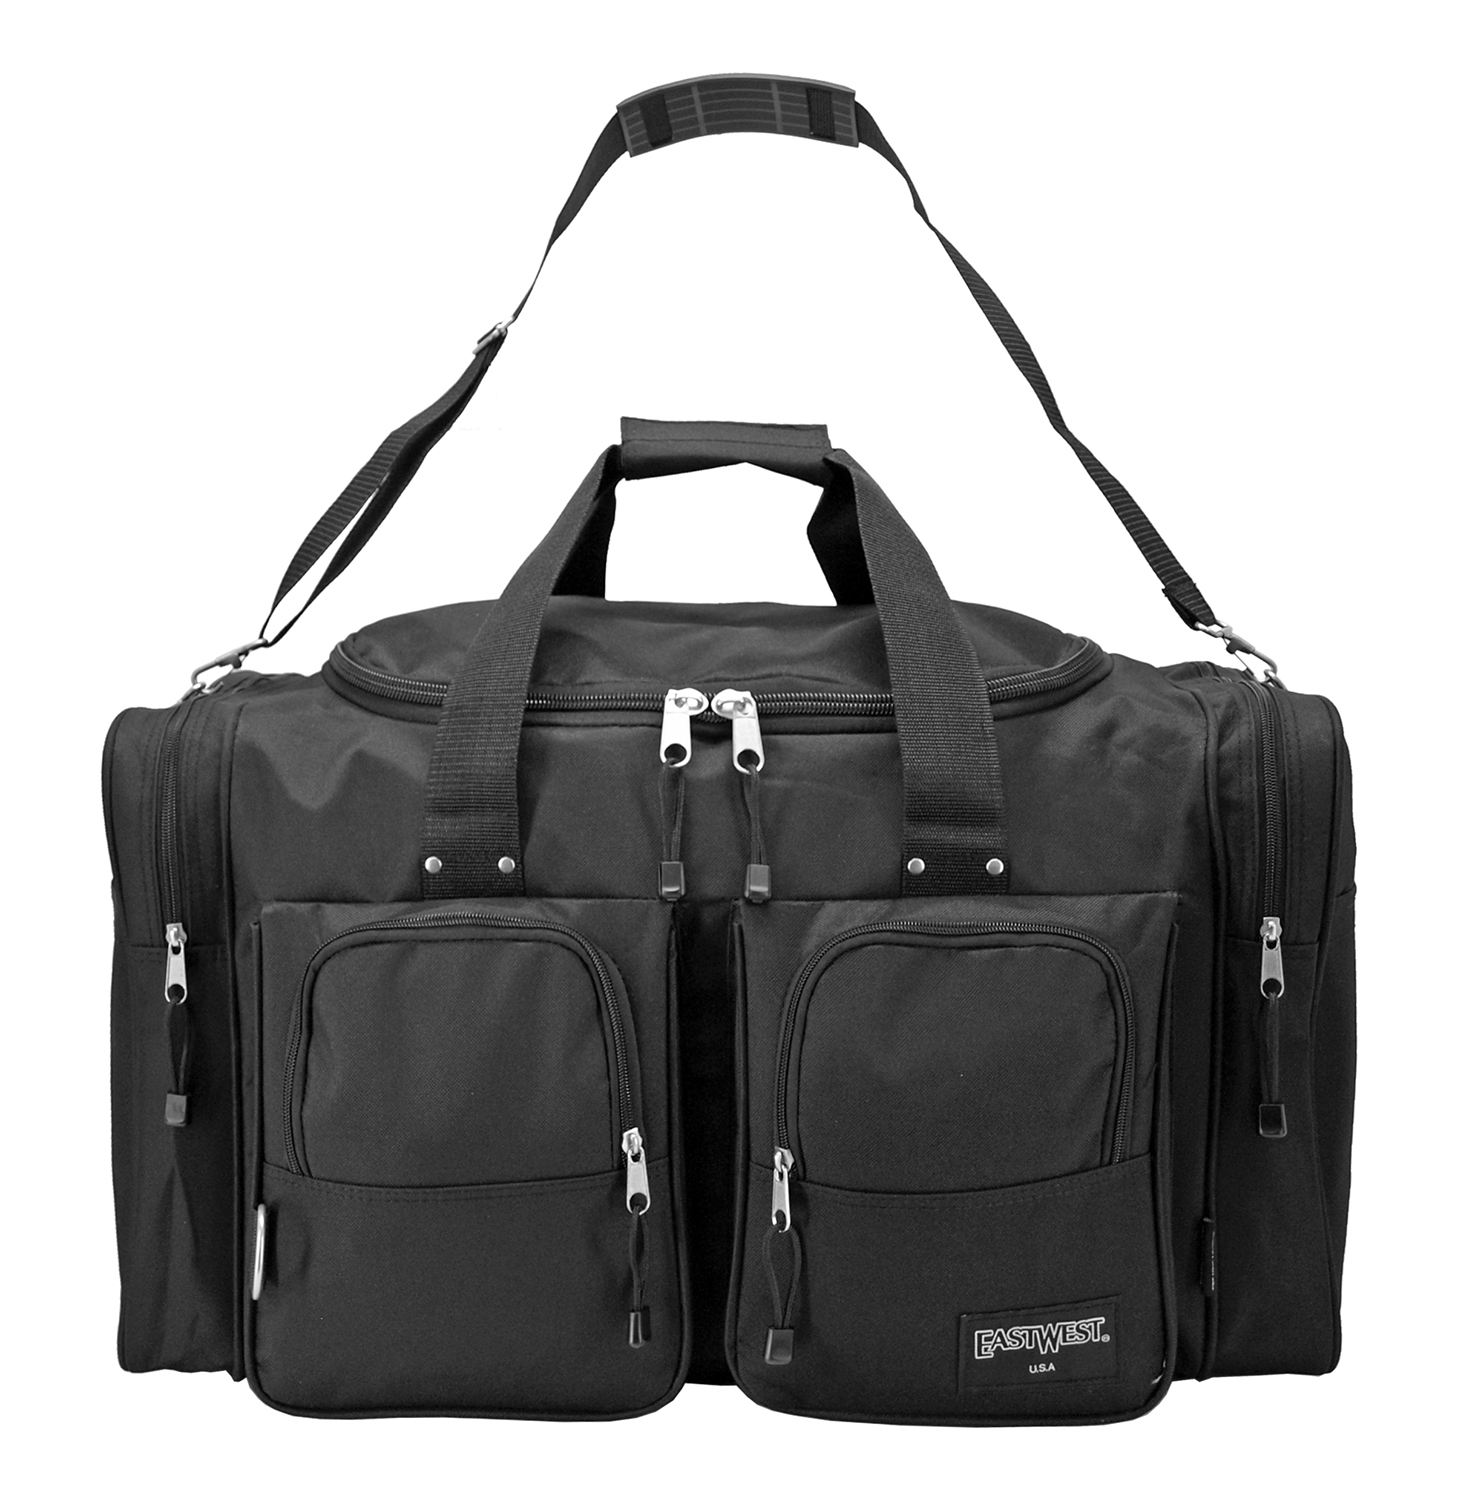 The Large Standard Duffle Bag - Black